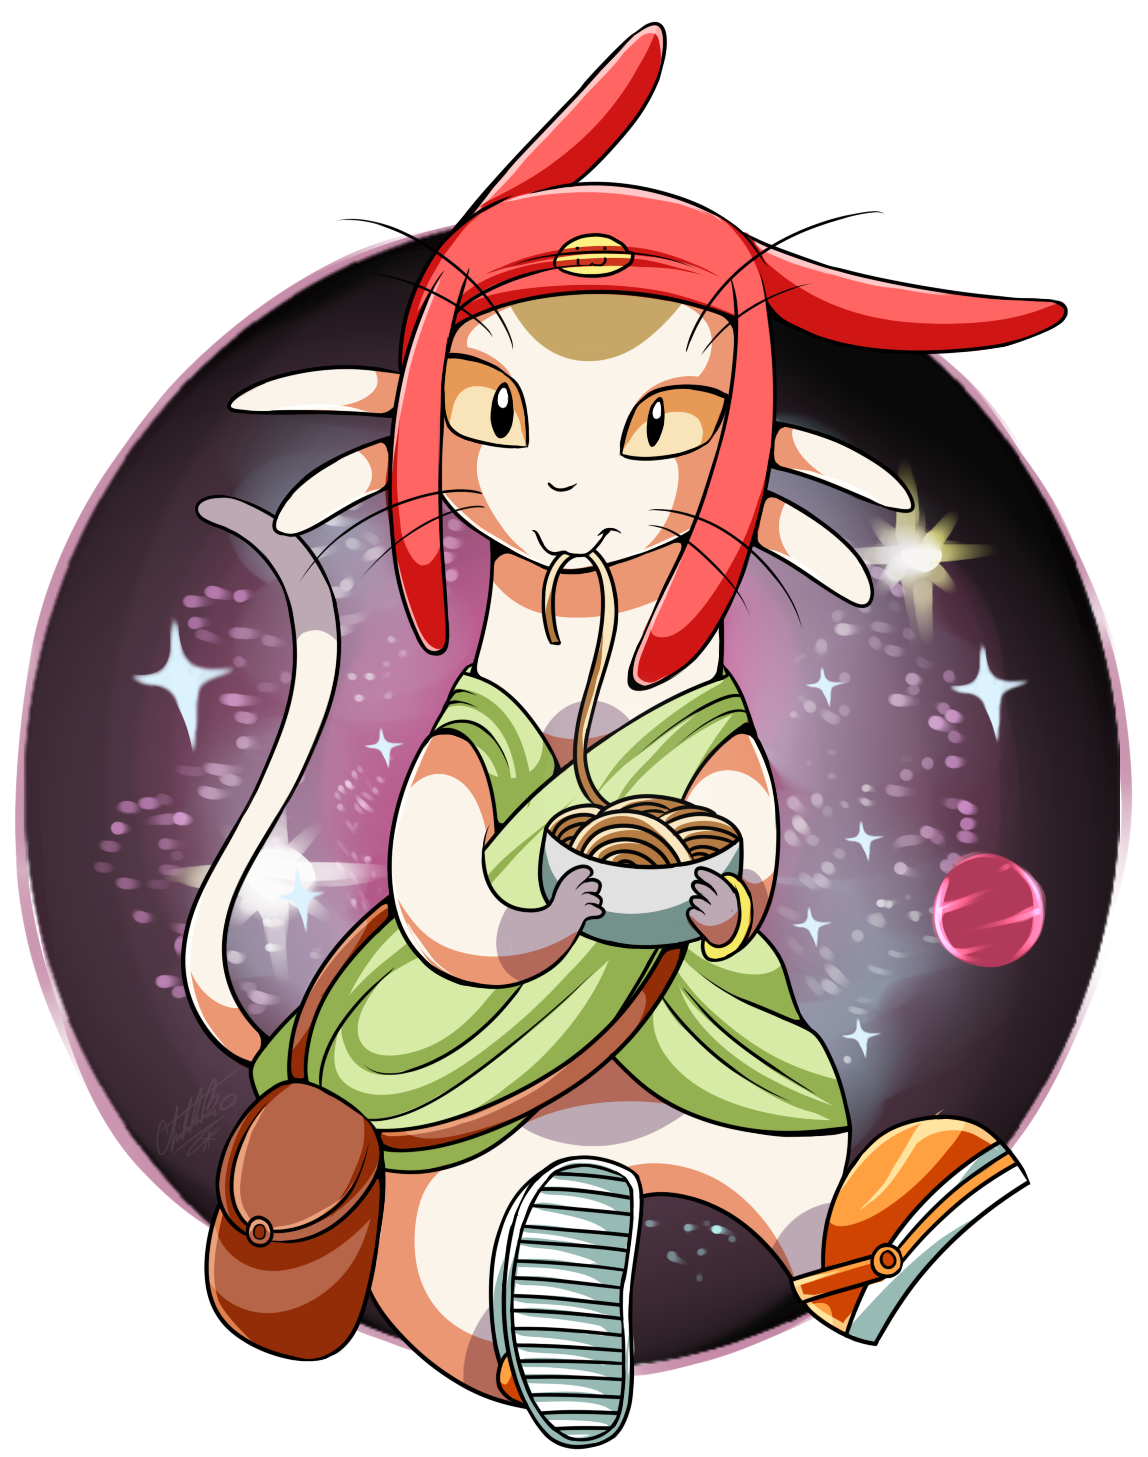 Space Dandy: Meow by Sweetochii on DeviantArt